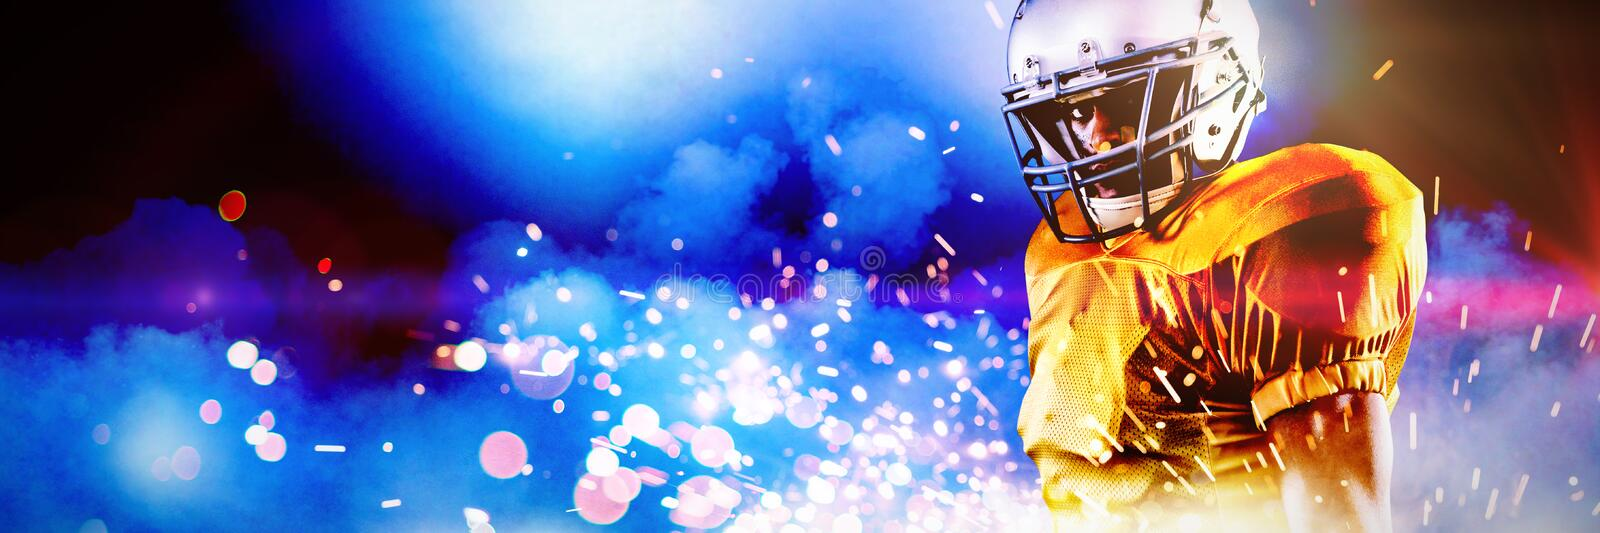 Composite image of portrait of confident american football player in helmet holding ball royalty free stock photography